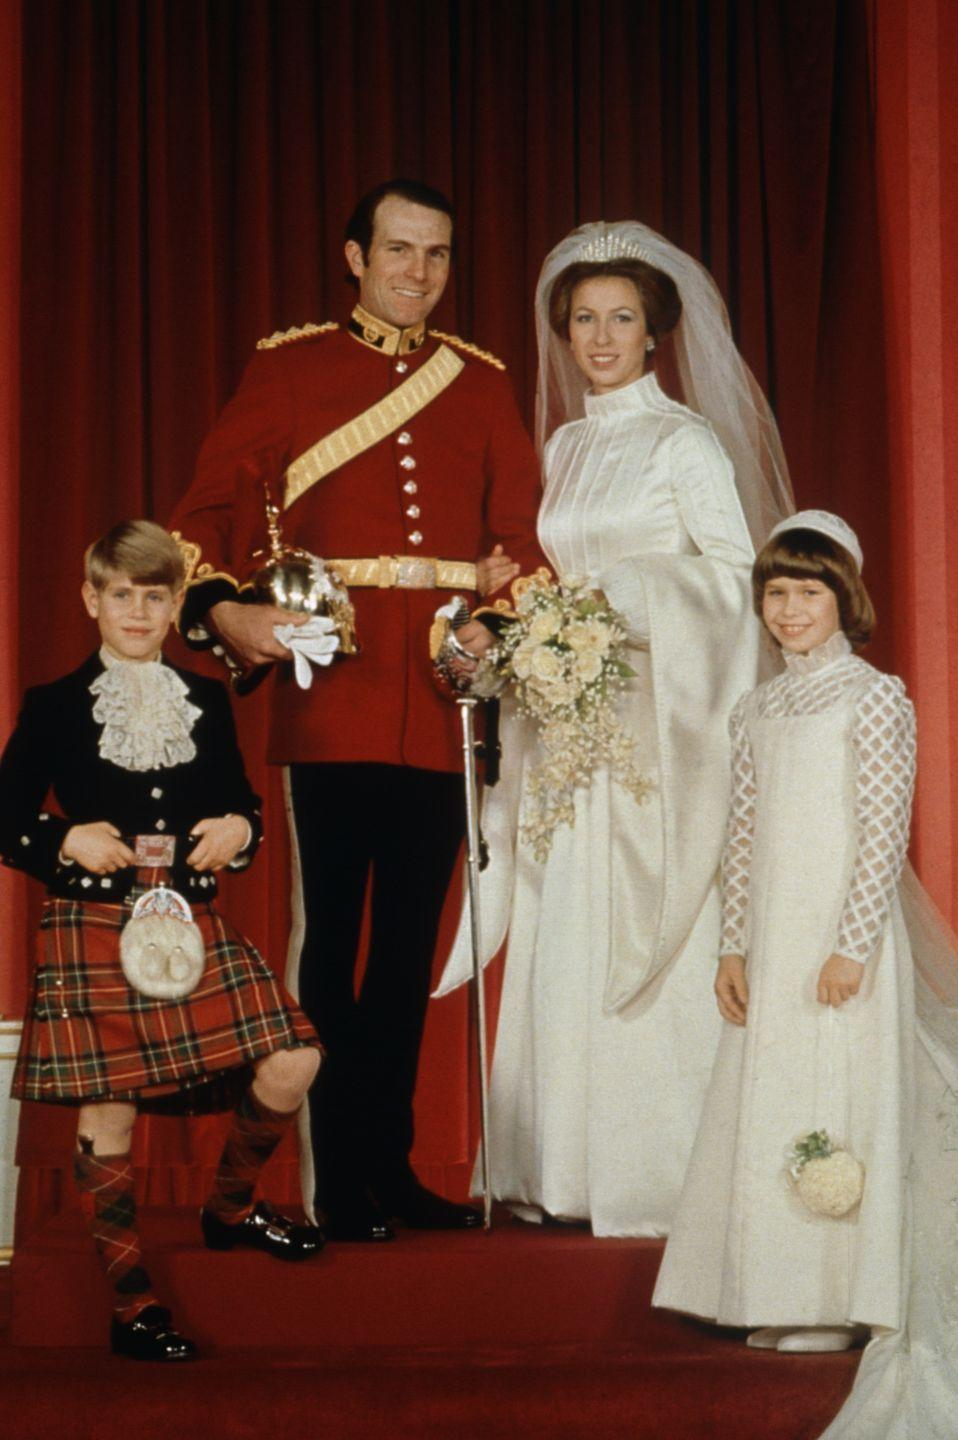 <p>On her wedding day with husband Mark Phillips, younger brother Prince Edward, and cousin Lady Sarah Armstrong-Jones.</p>